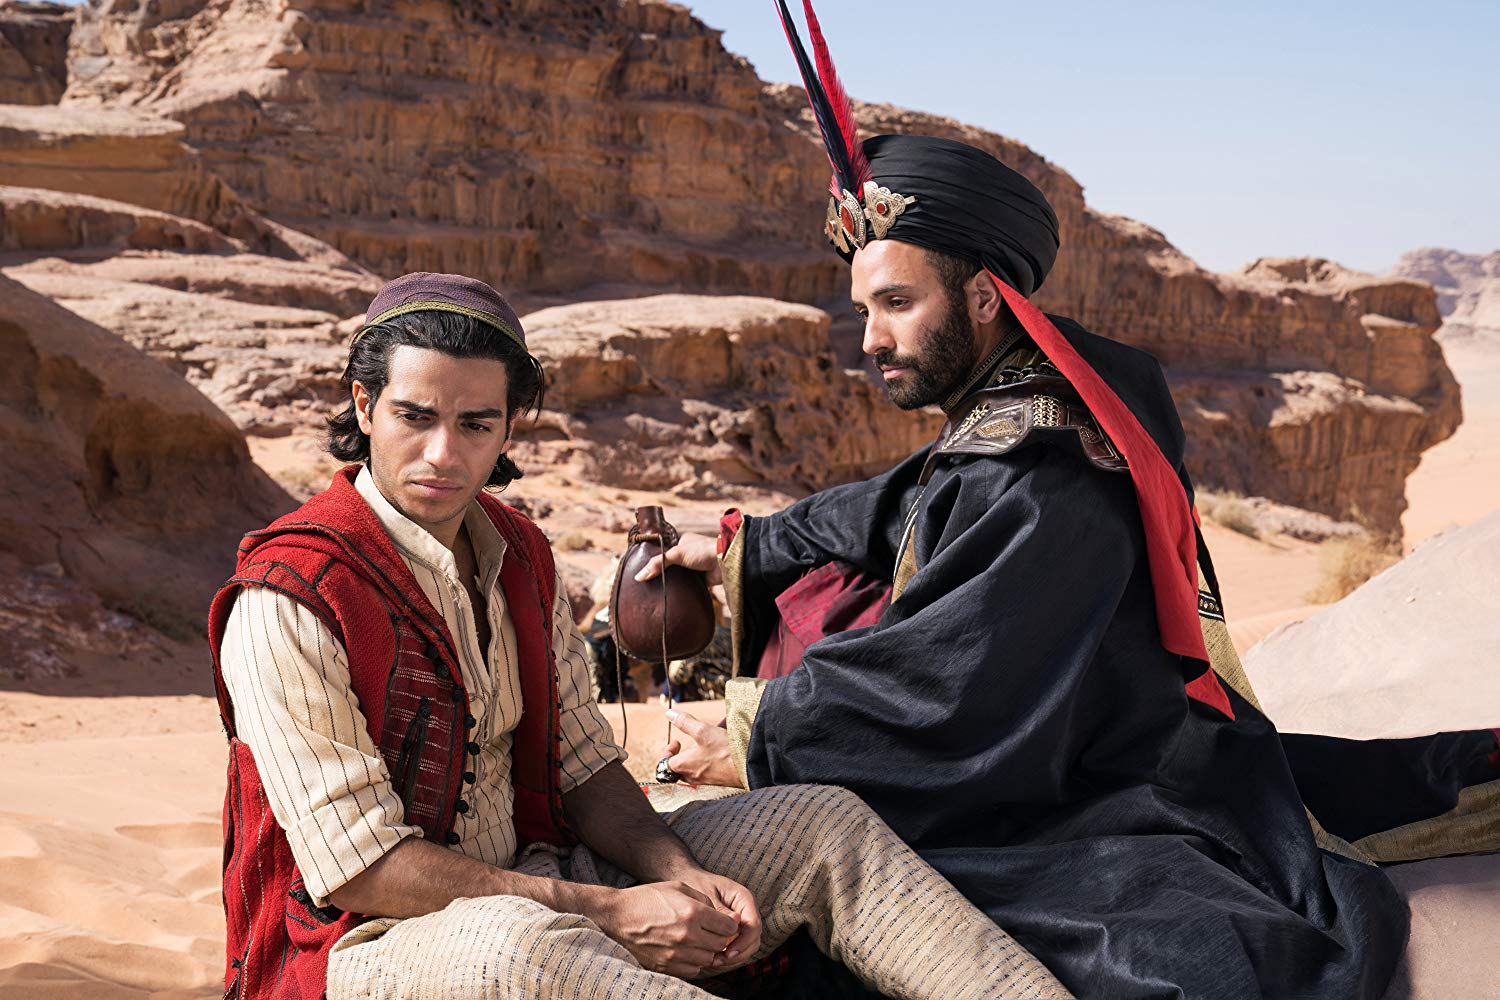 Aladdin, Will Smith, Mena Massoud, Naomi Scott, Marwan Kenzari, Nasim Pedrad,  Blue Genie, Flying carpet, Movie Review by Rawlins, Comedy, Fantasy, Rawlins GLAM